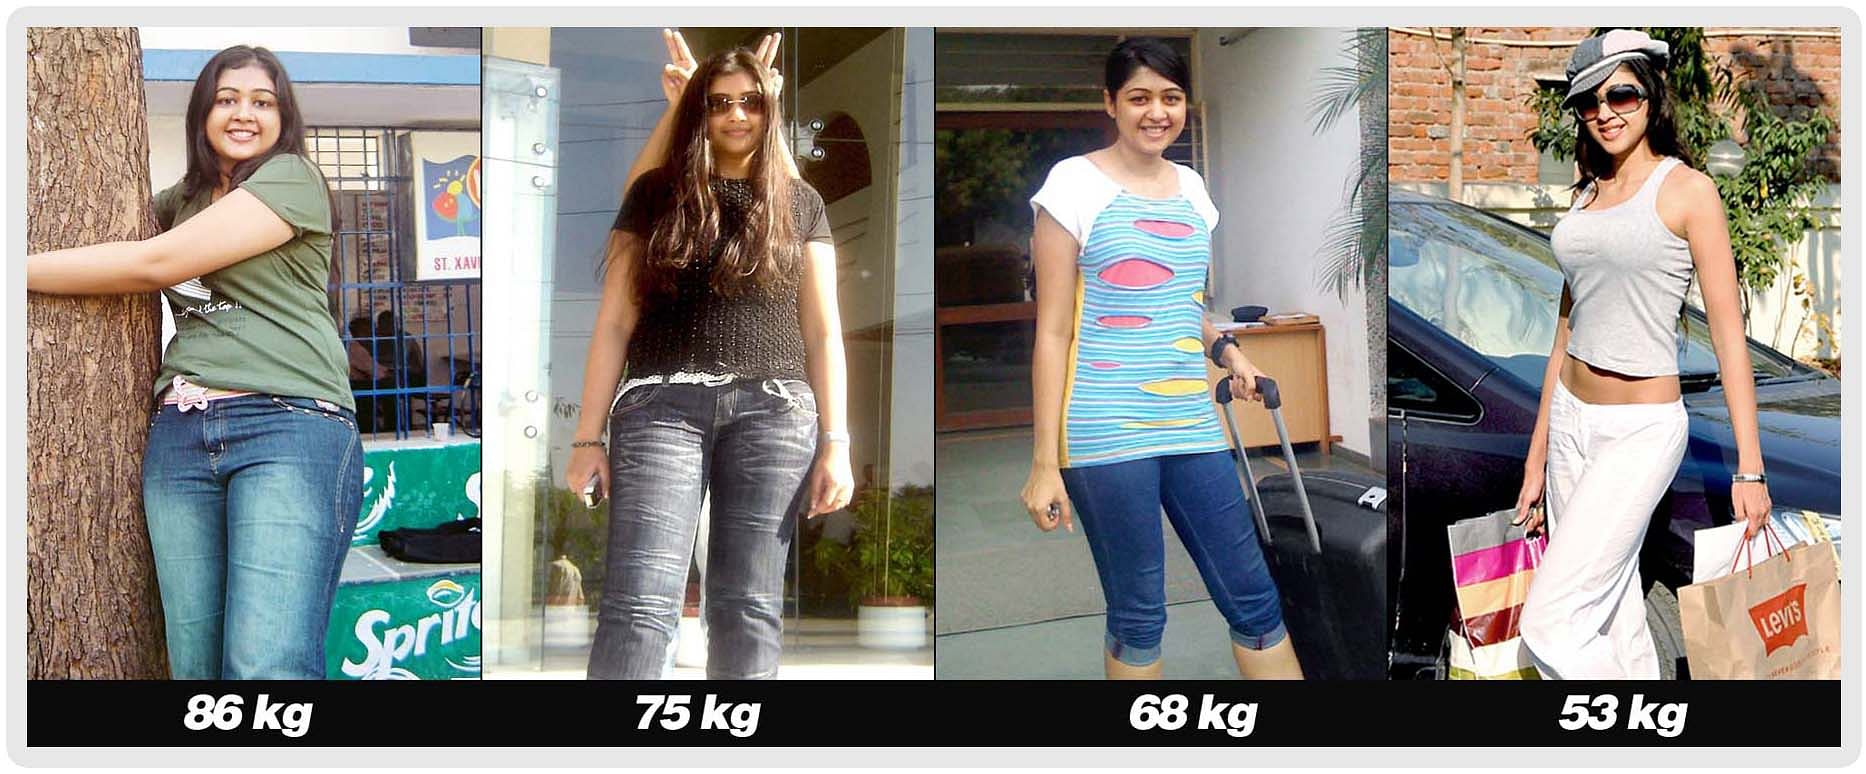 She Lost 33Kgs In A Year And Is Now Guiding People To Stay